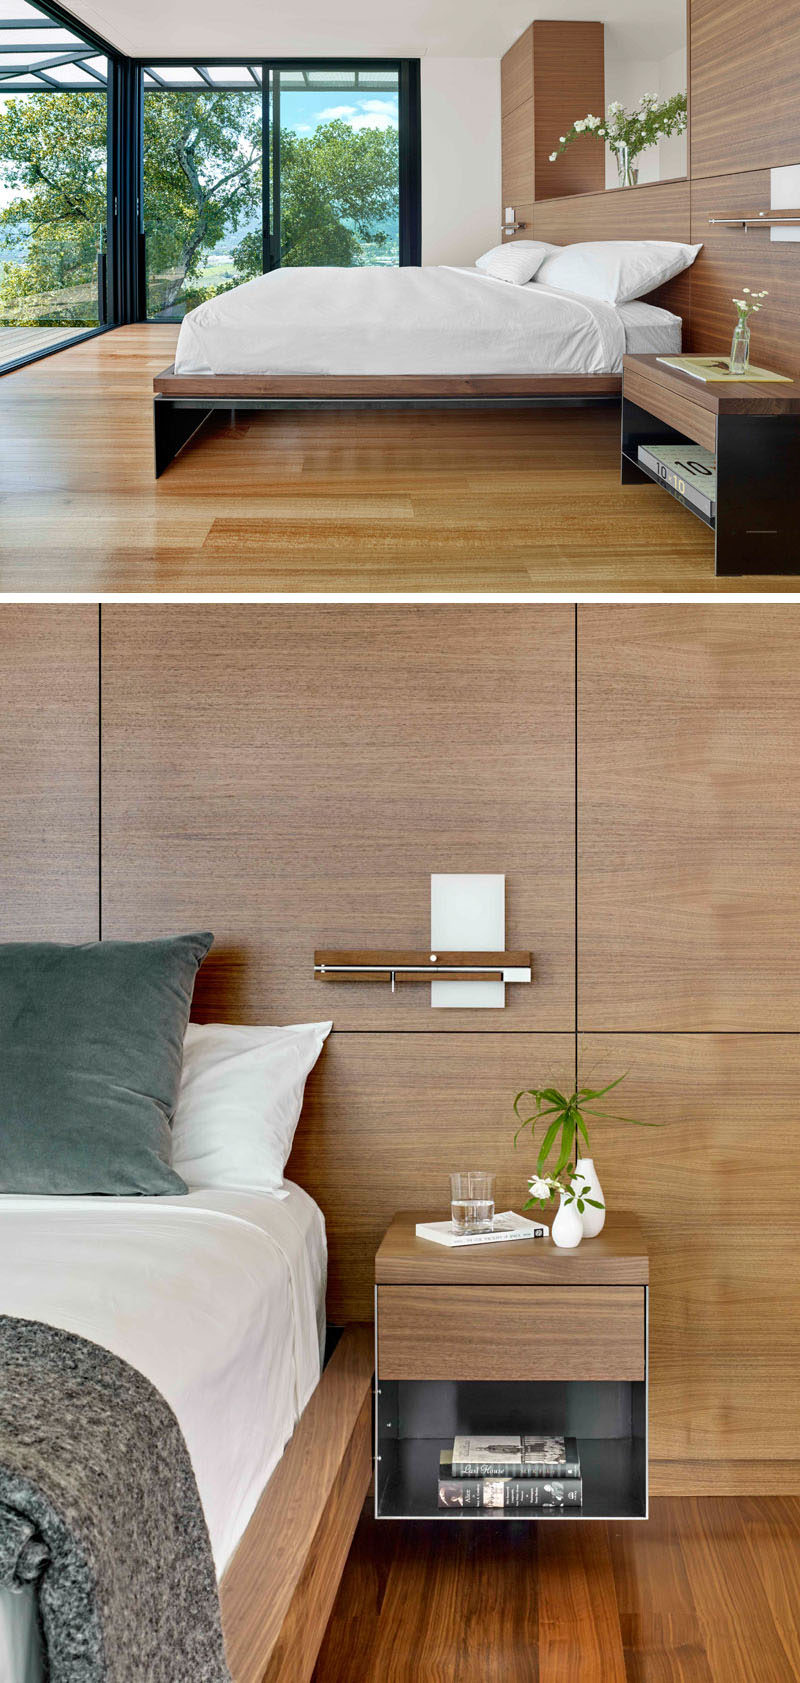 This modern bedroom opens up to a balcony, while a custom wood headboard meets a steel bed frame and bedside tables. #MasterBedroom #BedroomDesign